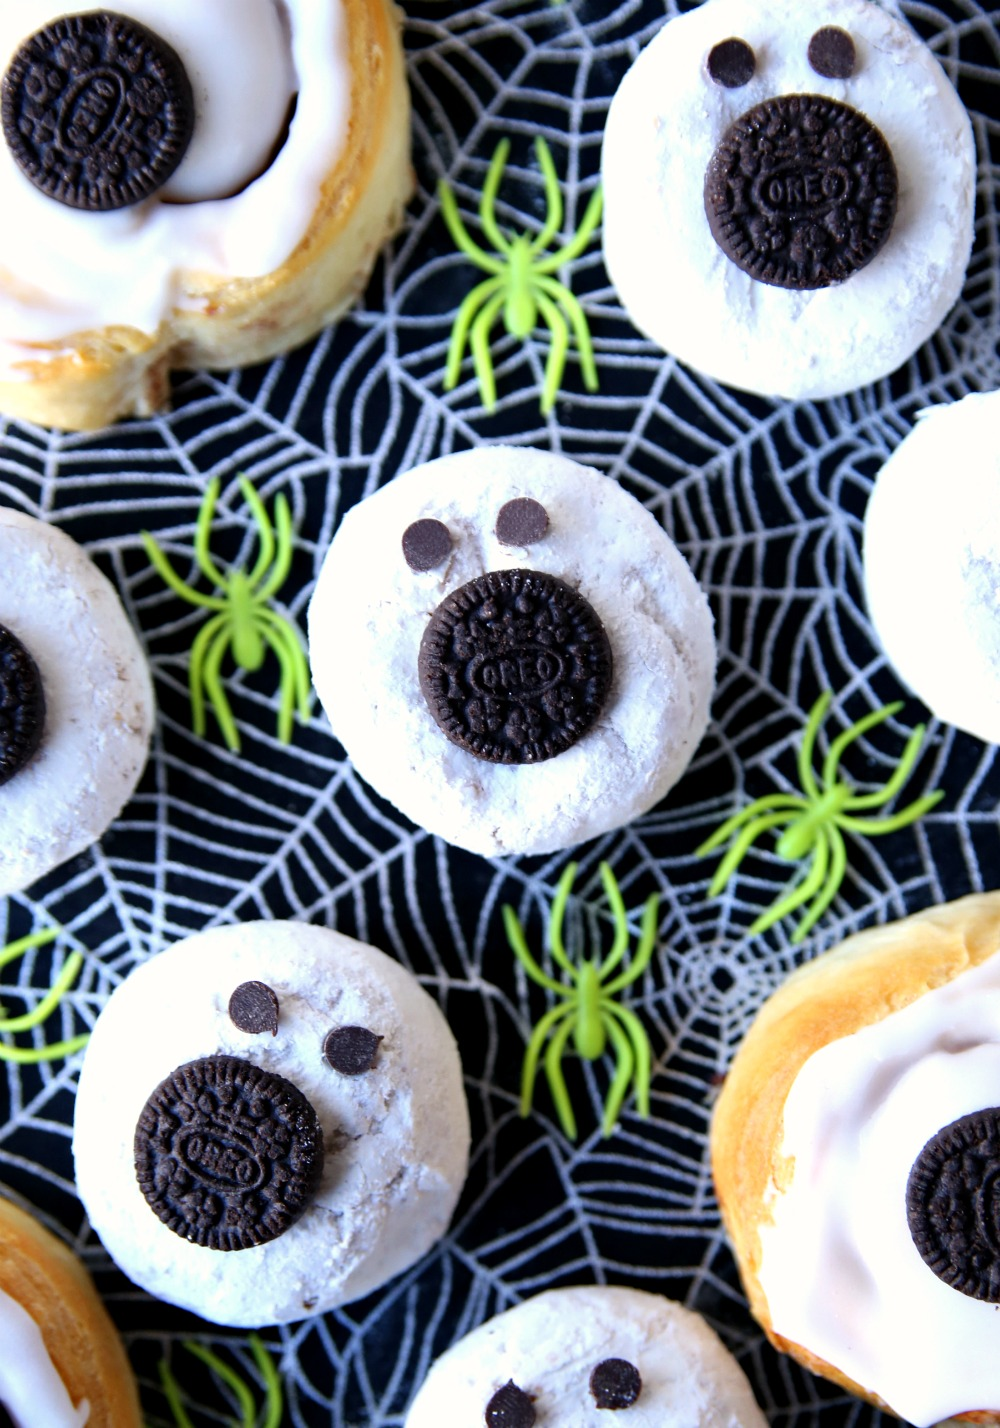 Turn donuts and cinnamon rolls into these simple and delicious Halloween Breakfast Treats.  A spooky Halloween treat that everyone will love! #halloween #halloweenbreakfasttreats #halloweentreats